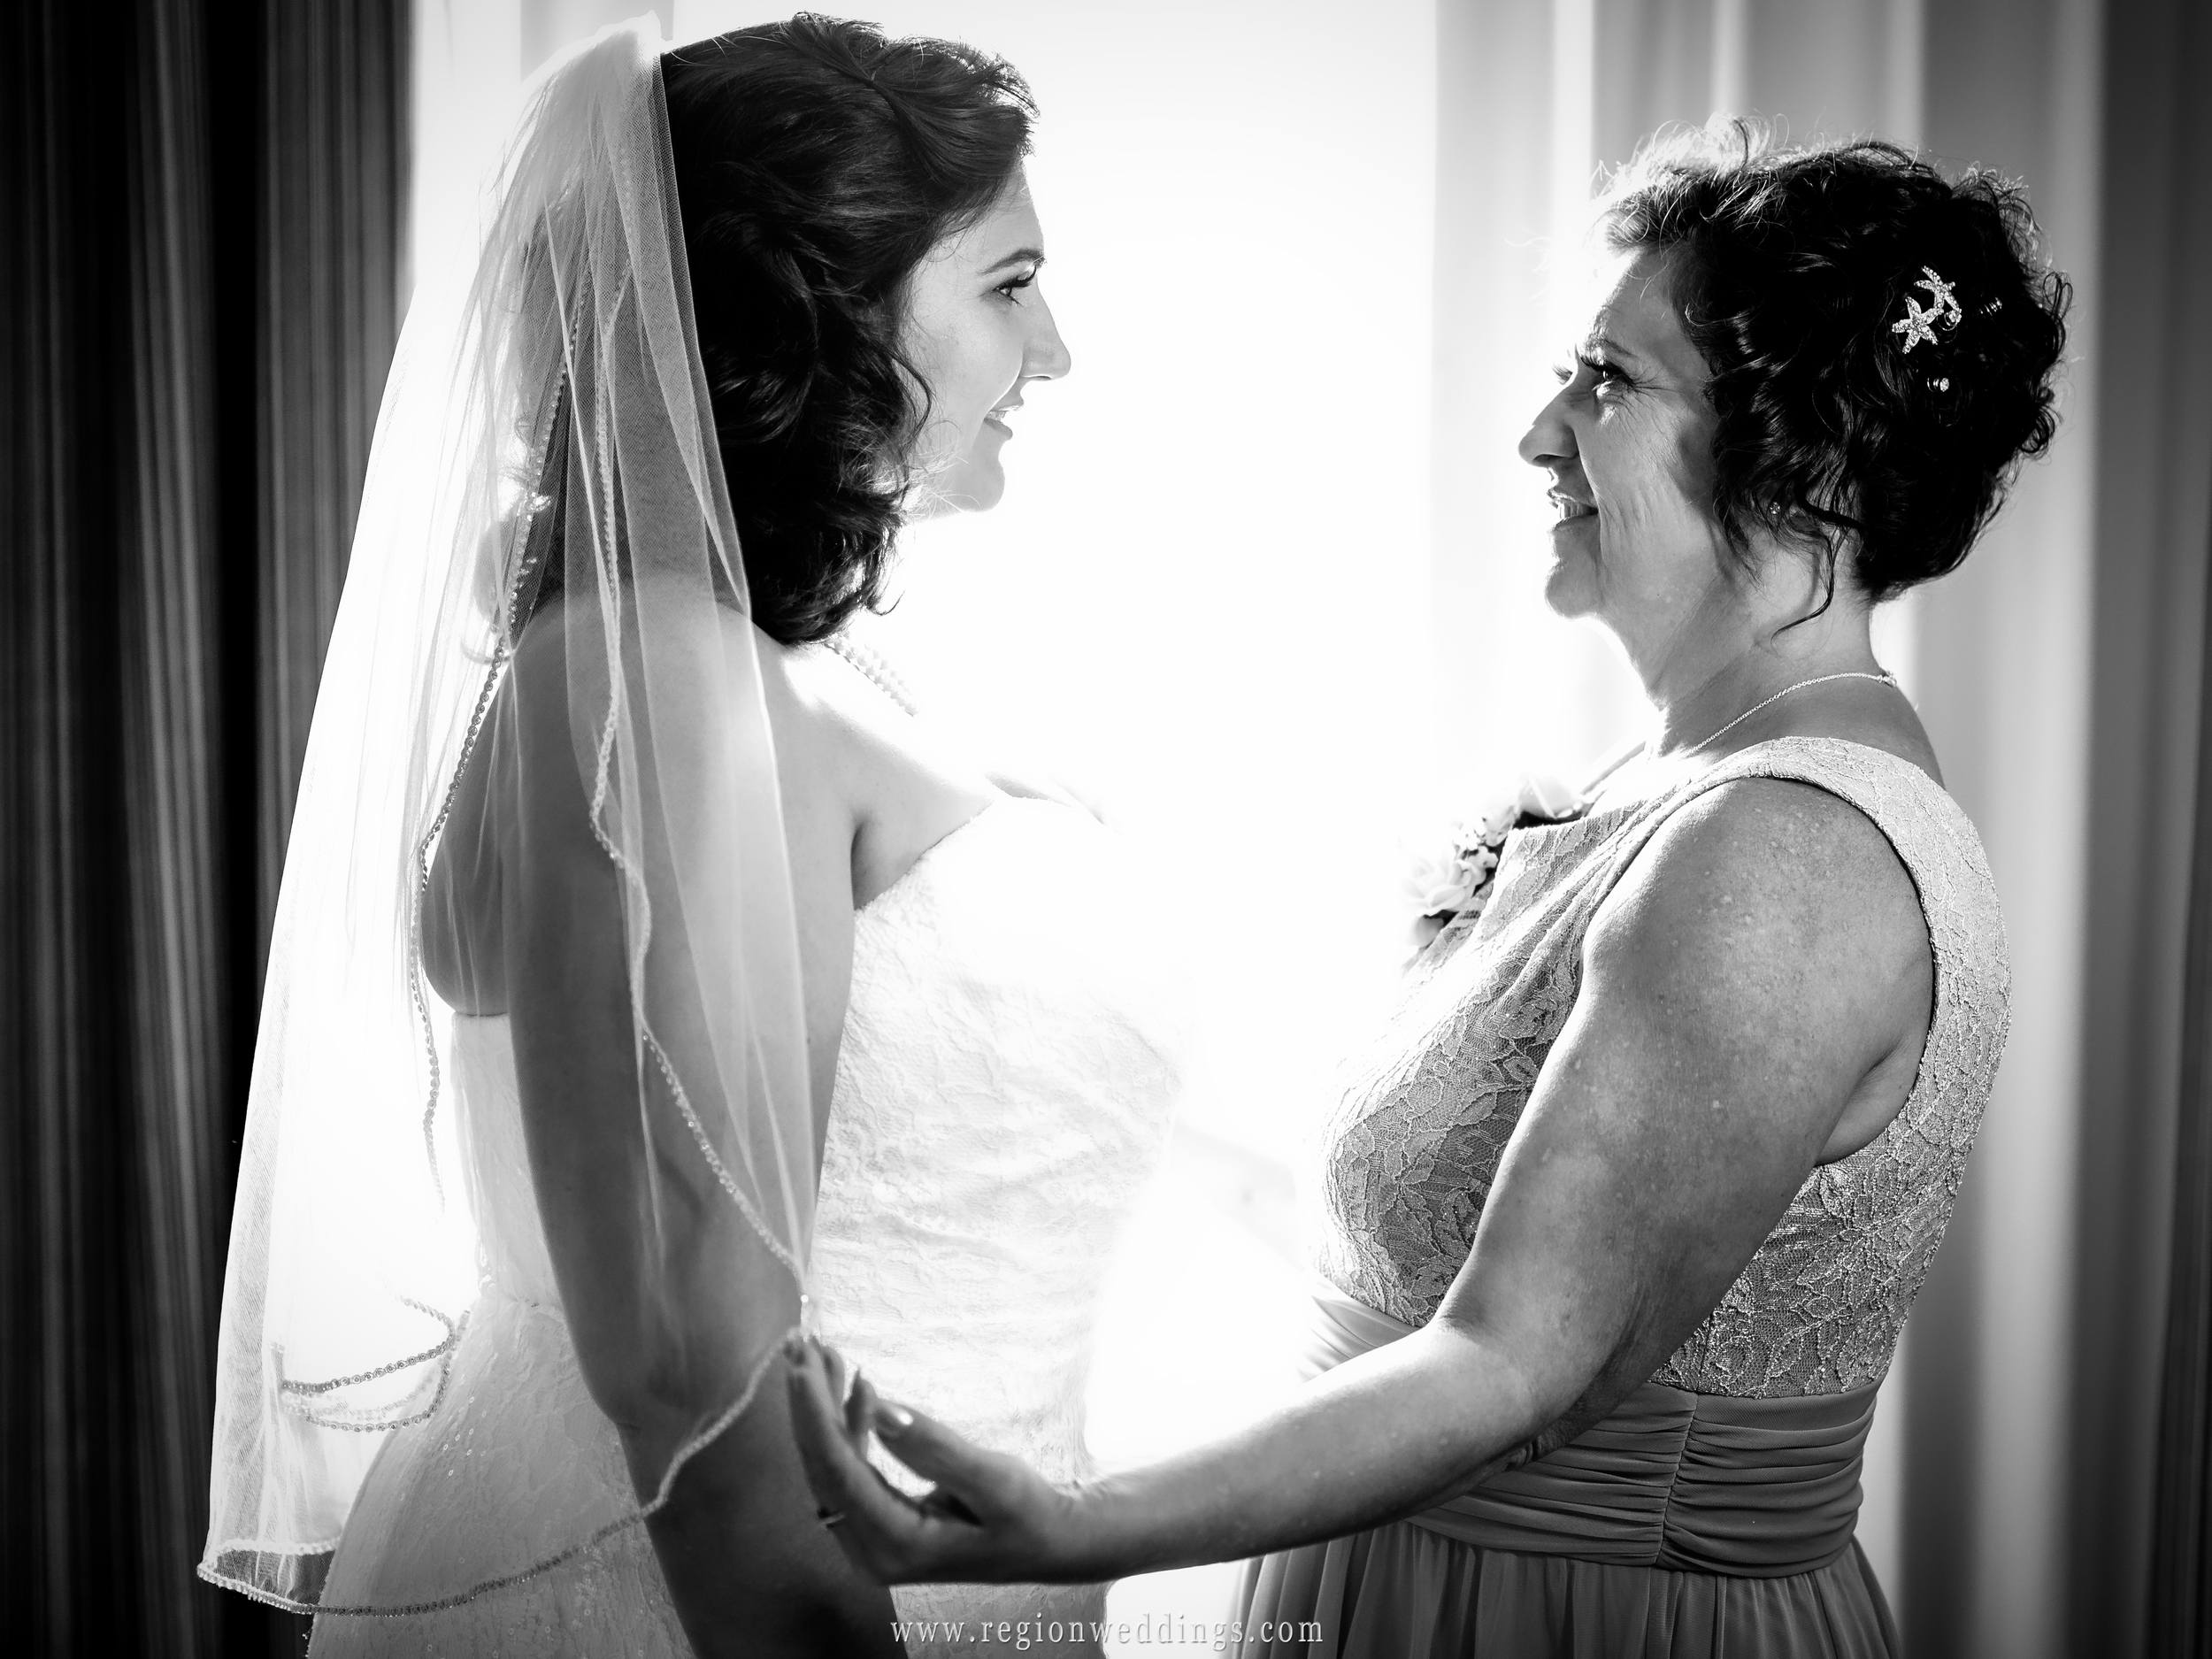 The bride and her mom share an emotional moment on wedding day.